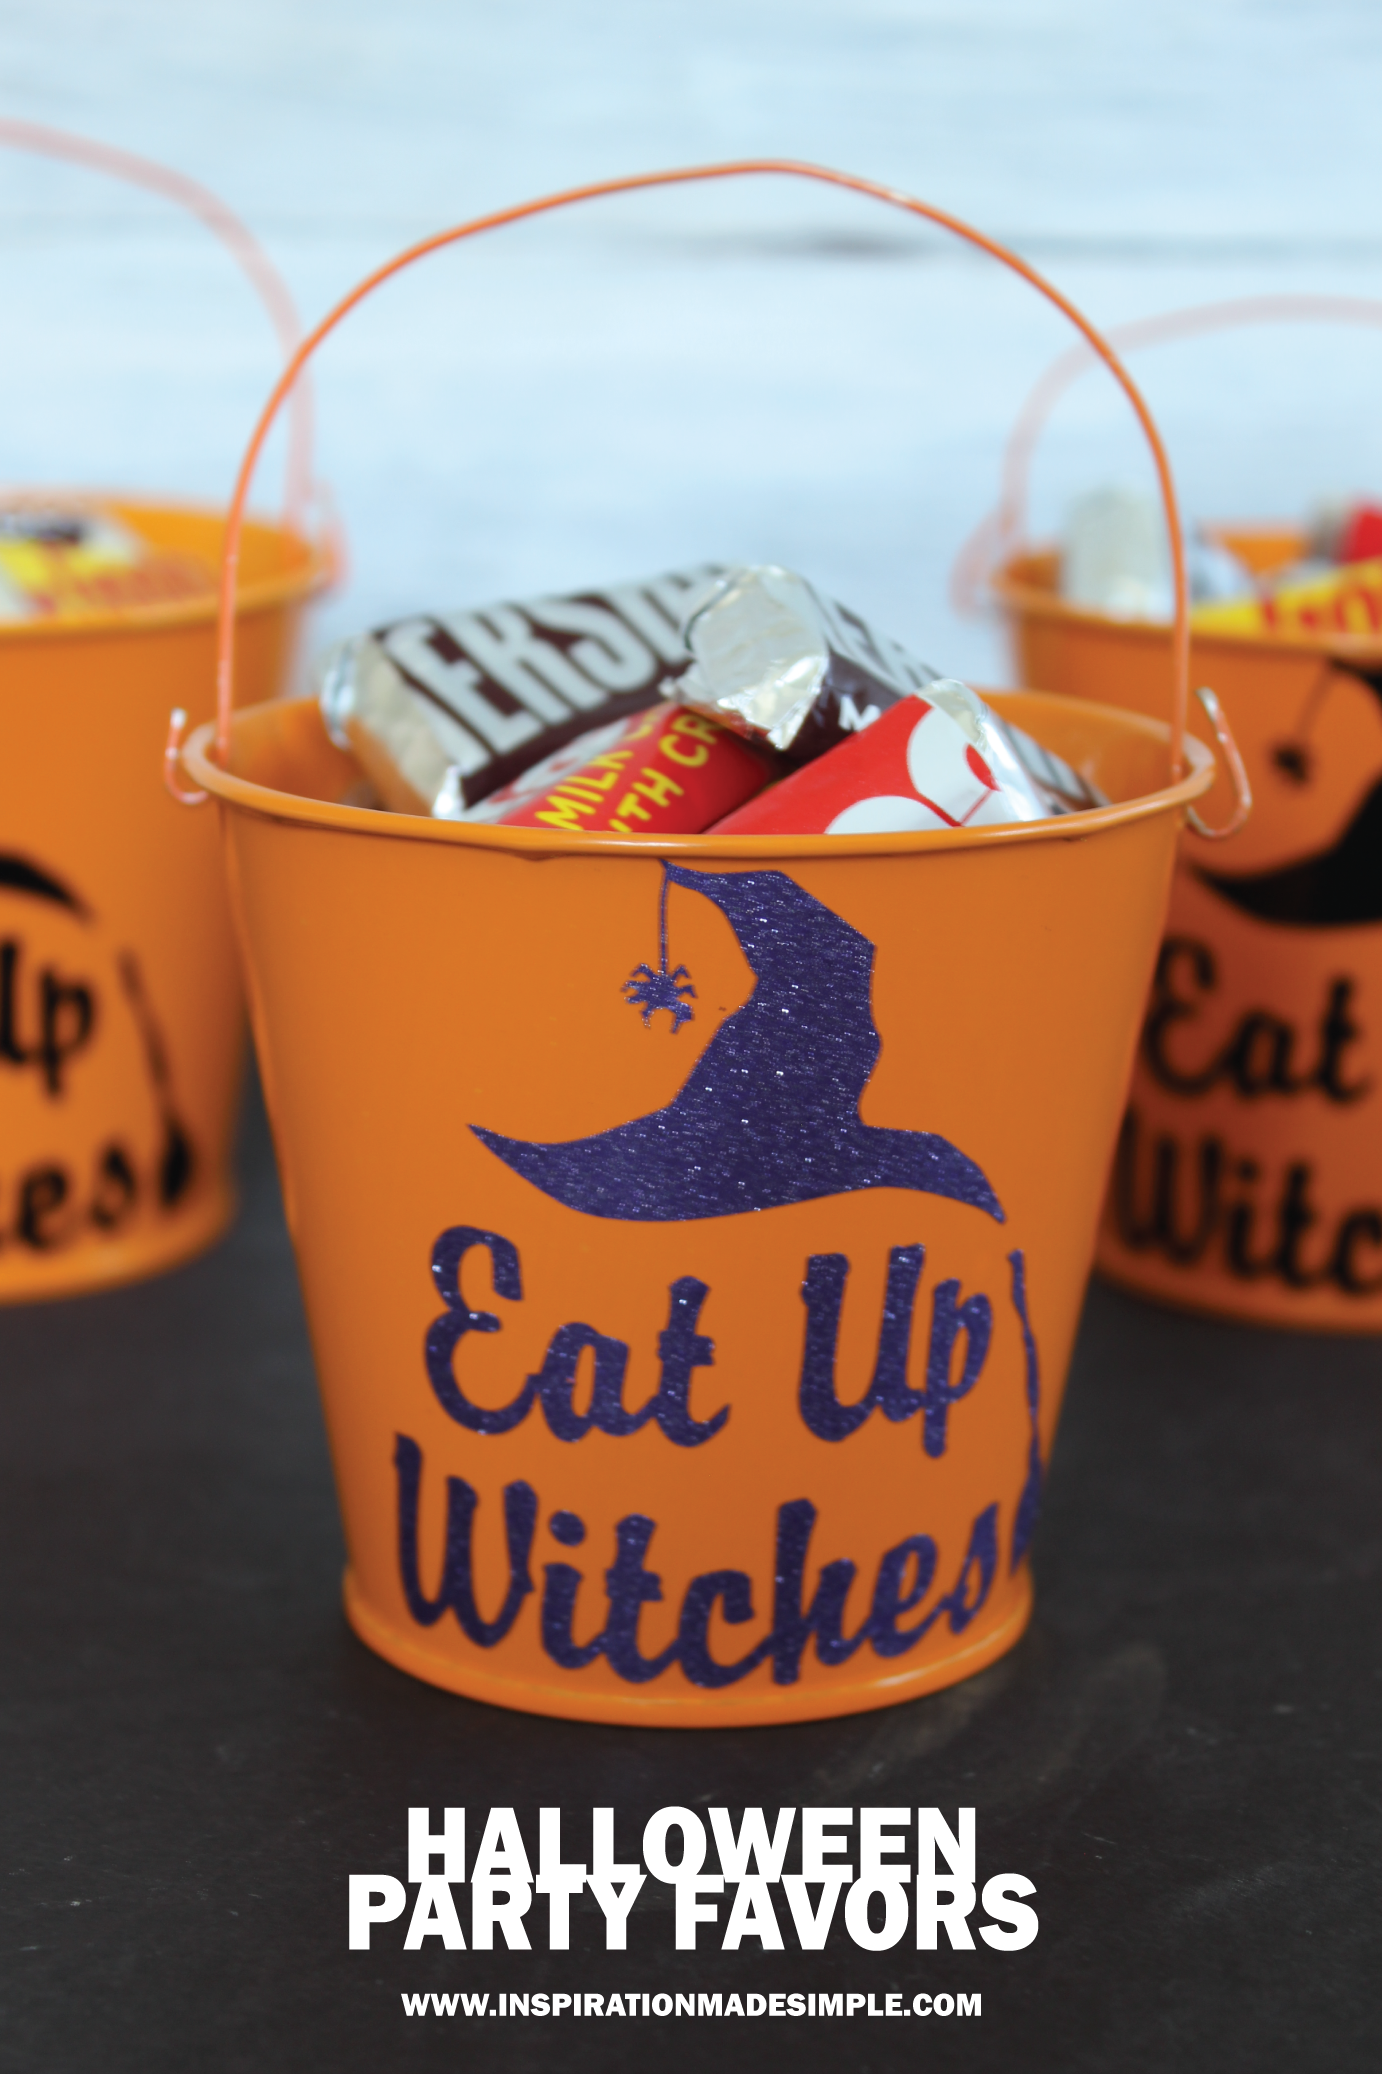 Eat Up Witches! Halloween Party Favor